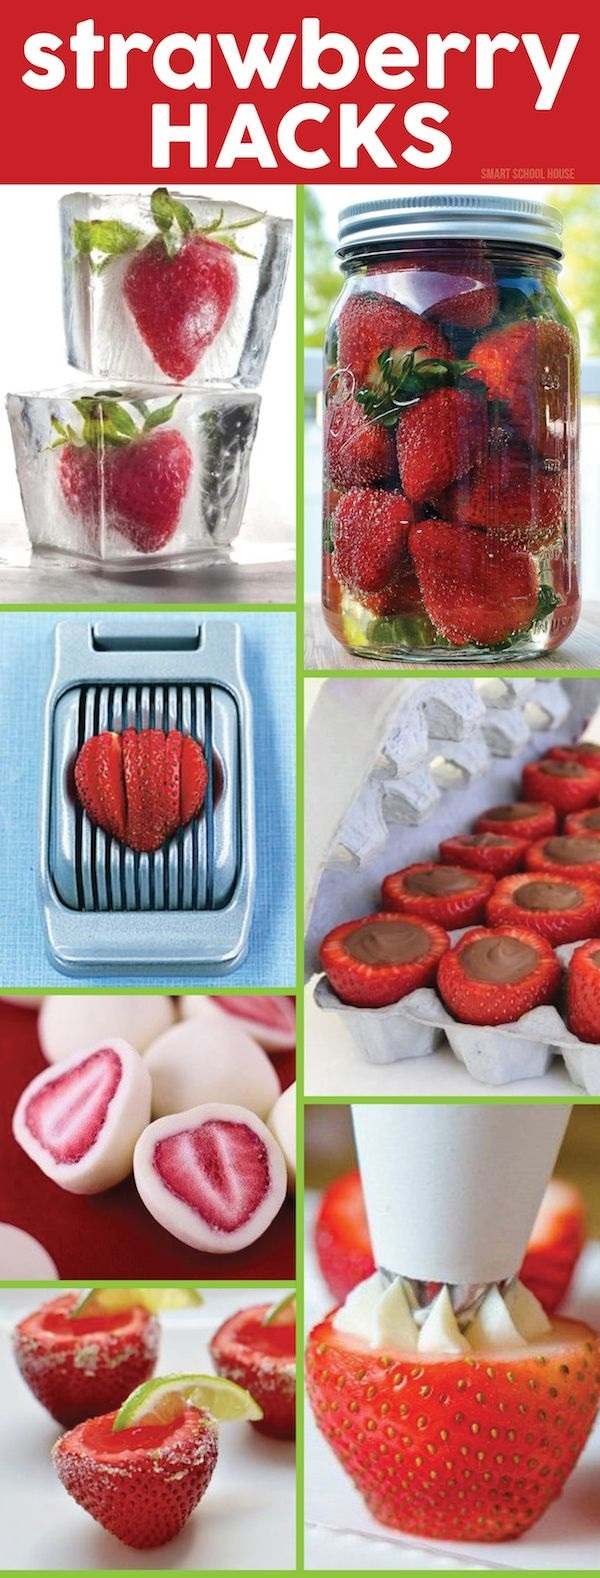 Clever Cooking Hacks (7)